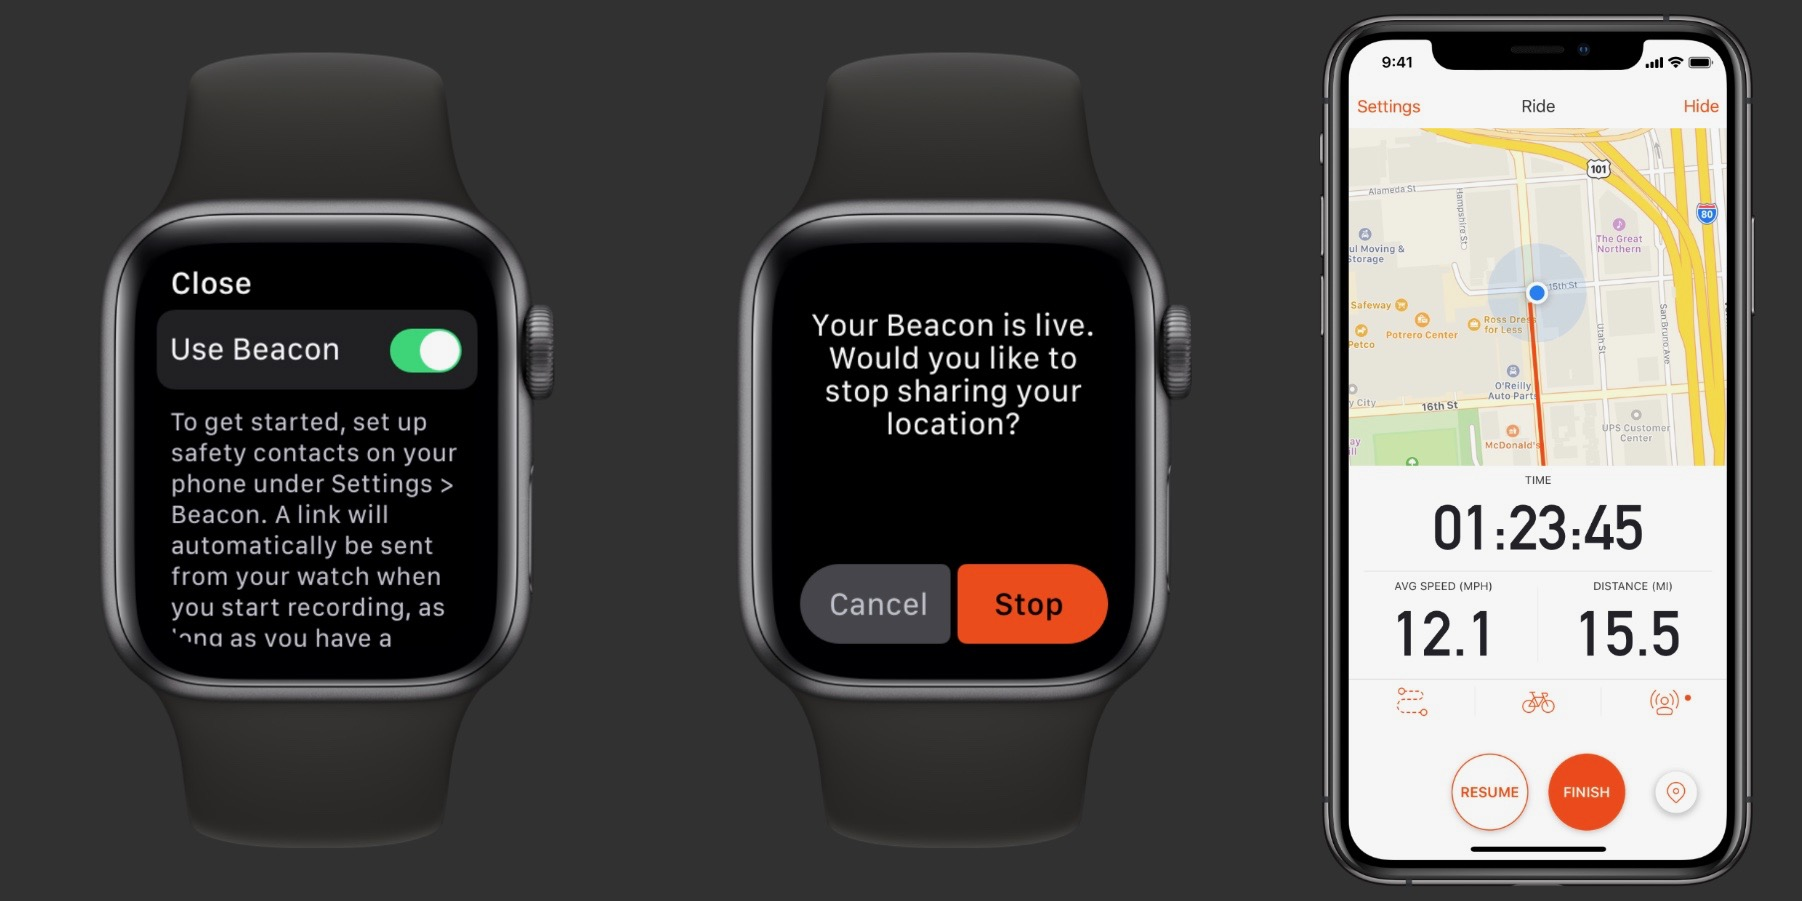 Strava's Location Sharing Feature 'Beacon' Now Works on Apple Watch Without iPhones